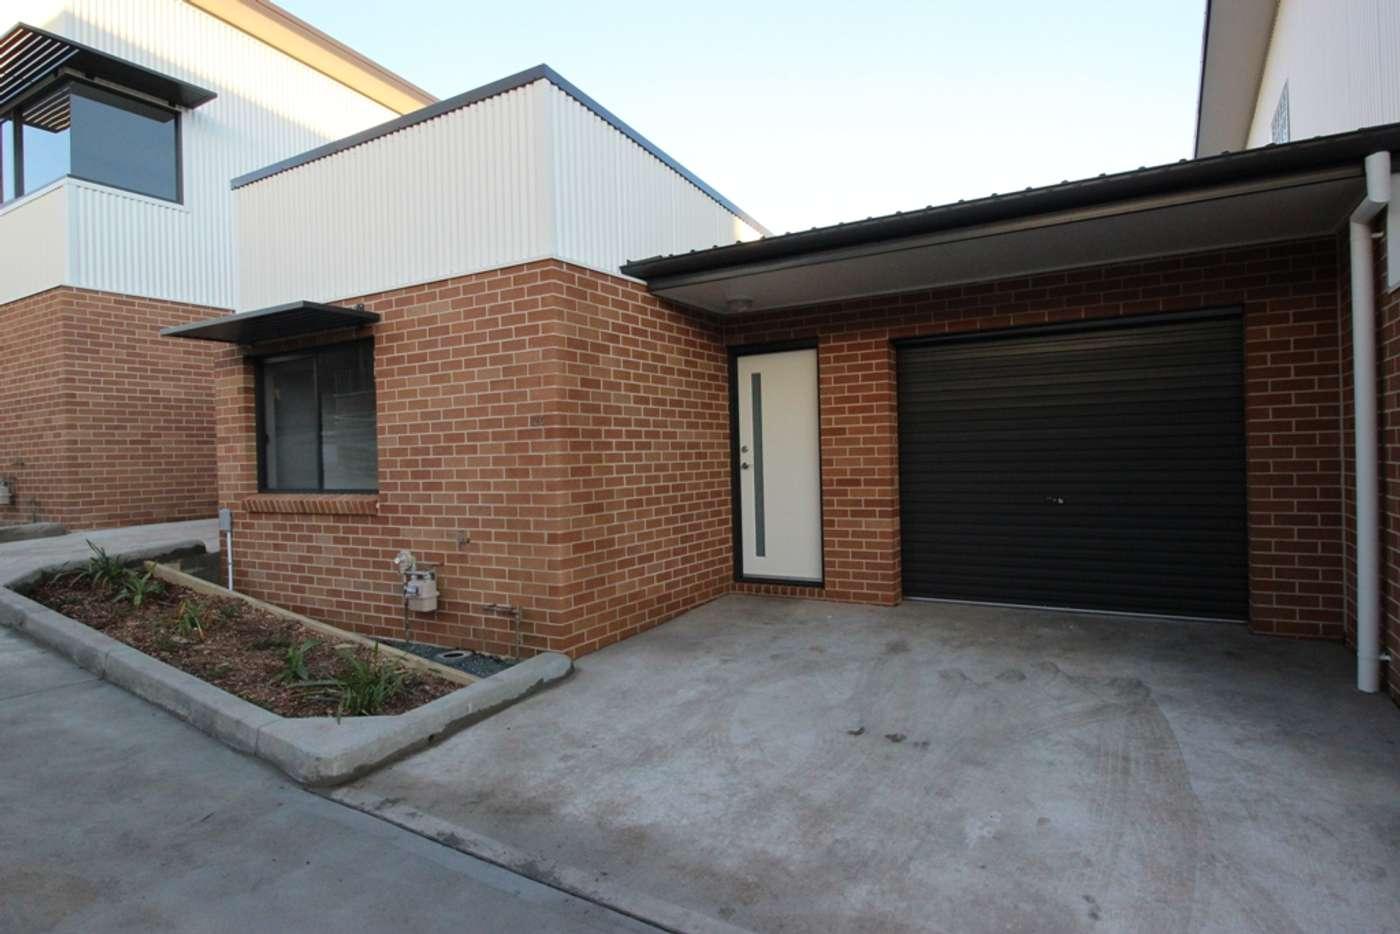 Main view of Homely townhouse listing, 26/49 Mawson Street, Shortland NSW 2307